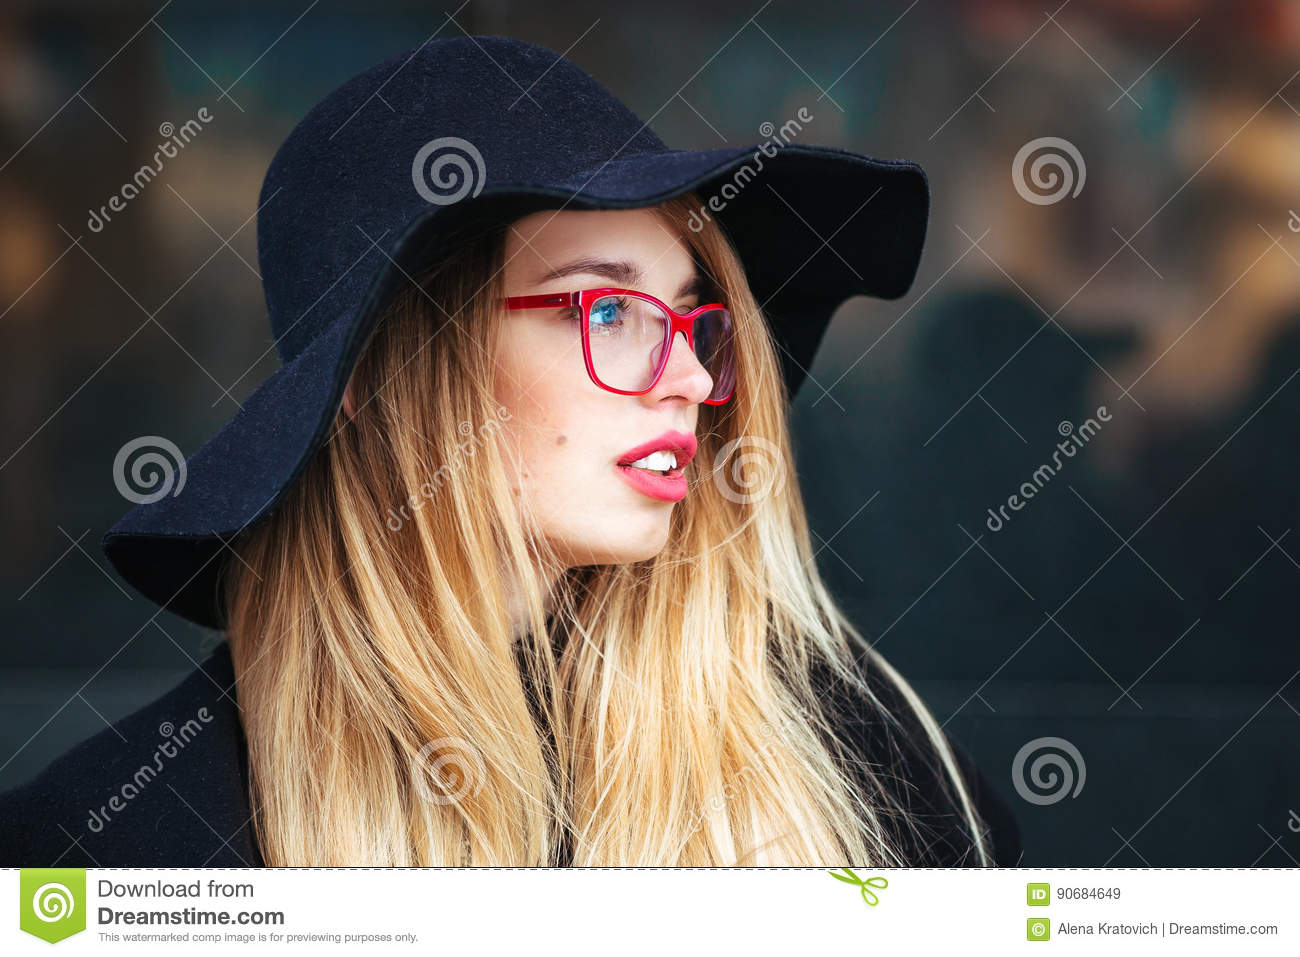 ef4afdd77283 Stock photo beautiful young woman black coat hat wearing red glasses red  bag walking city reflection